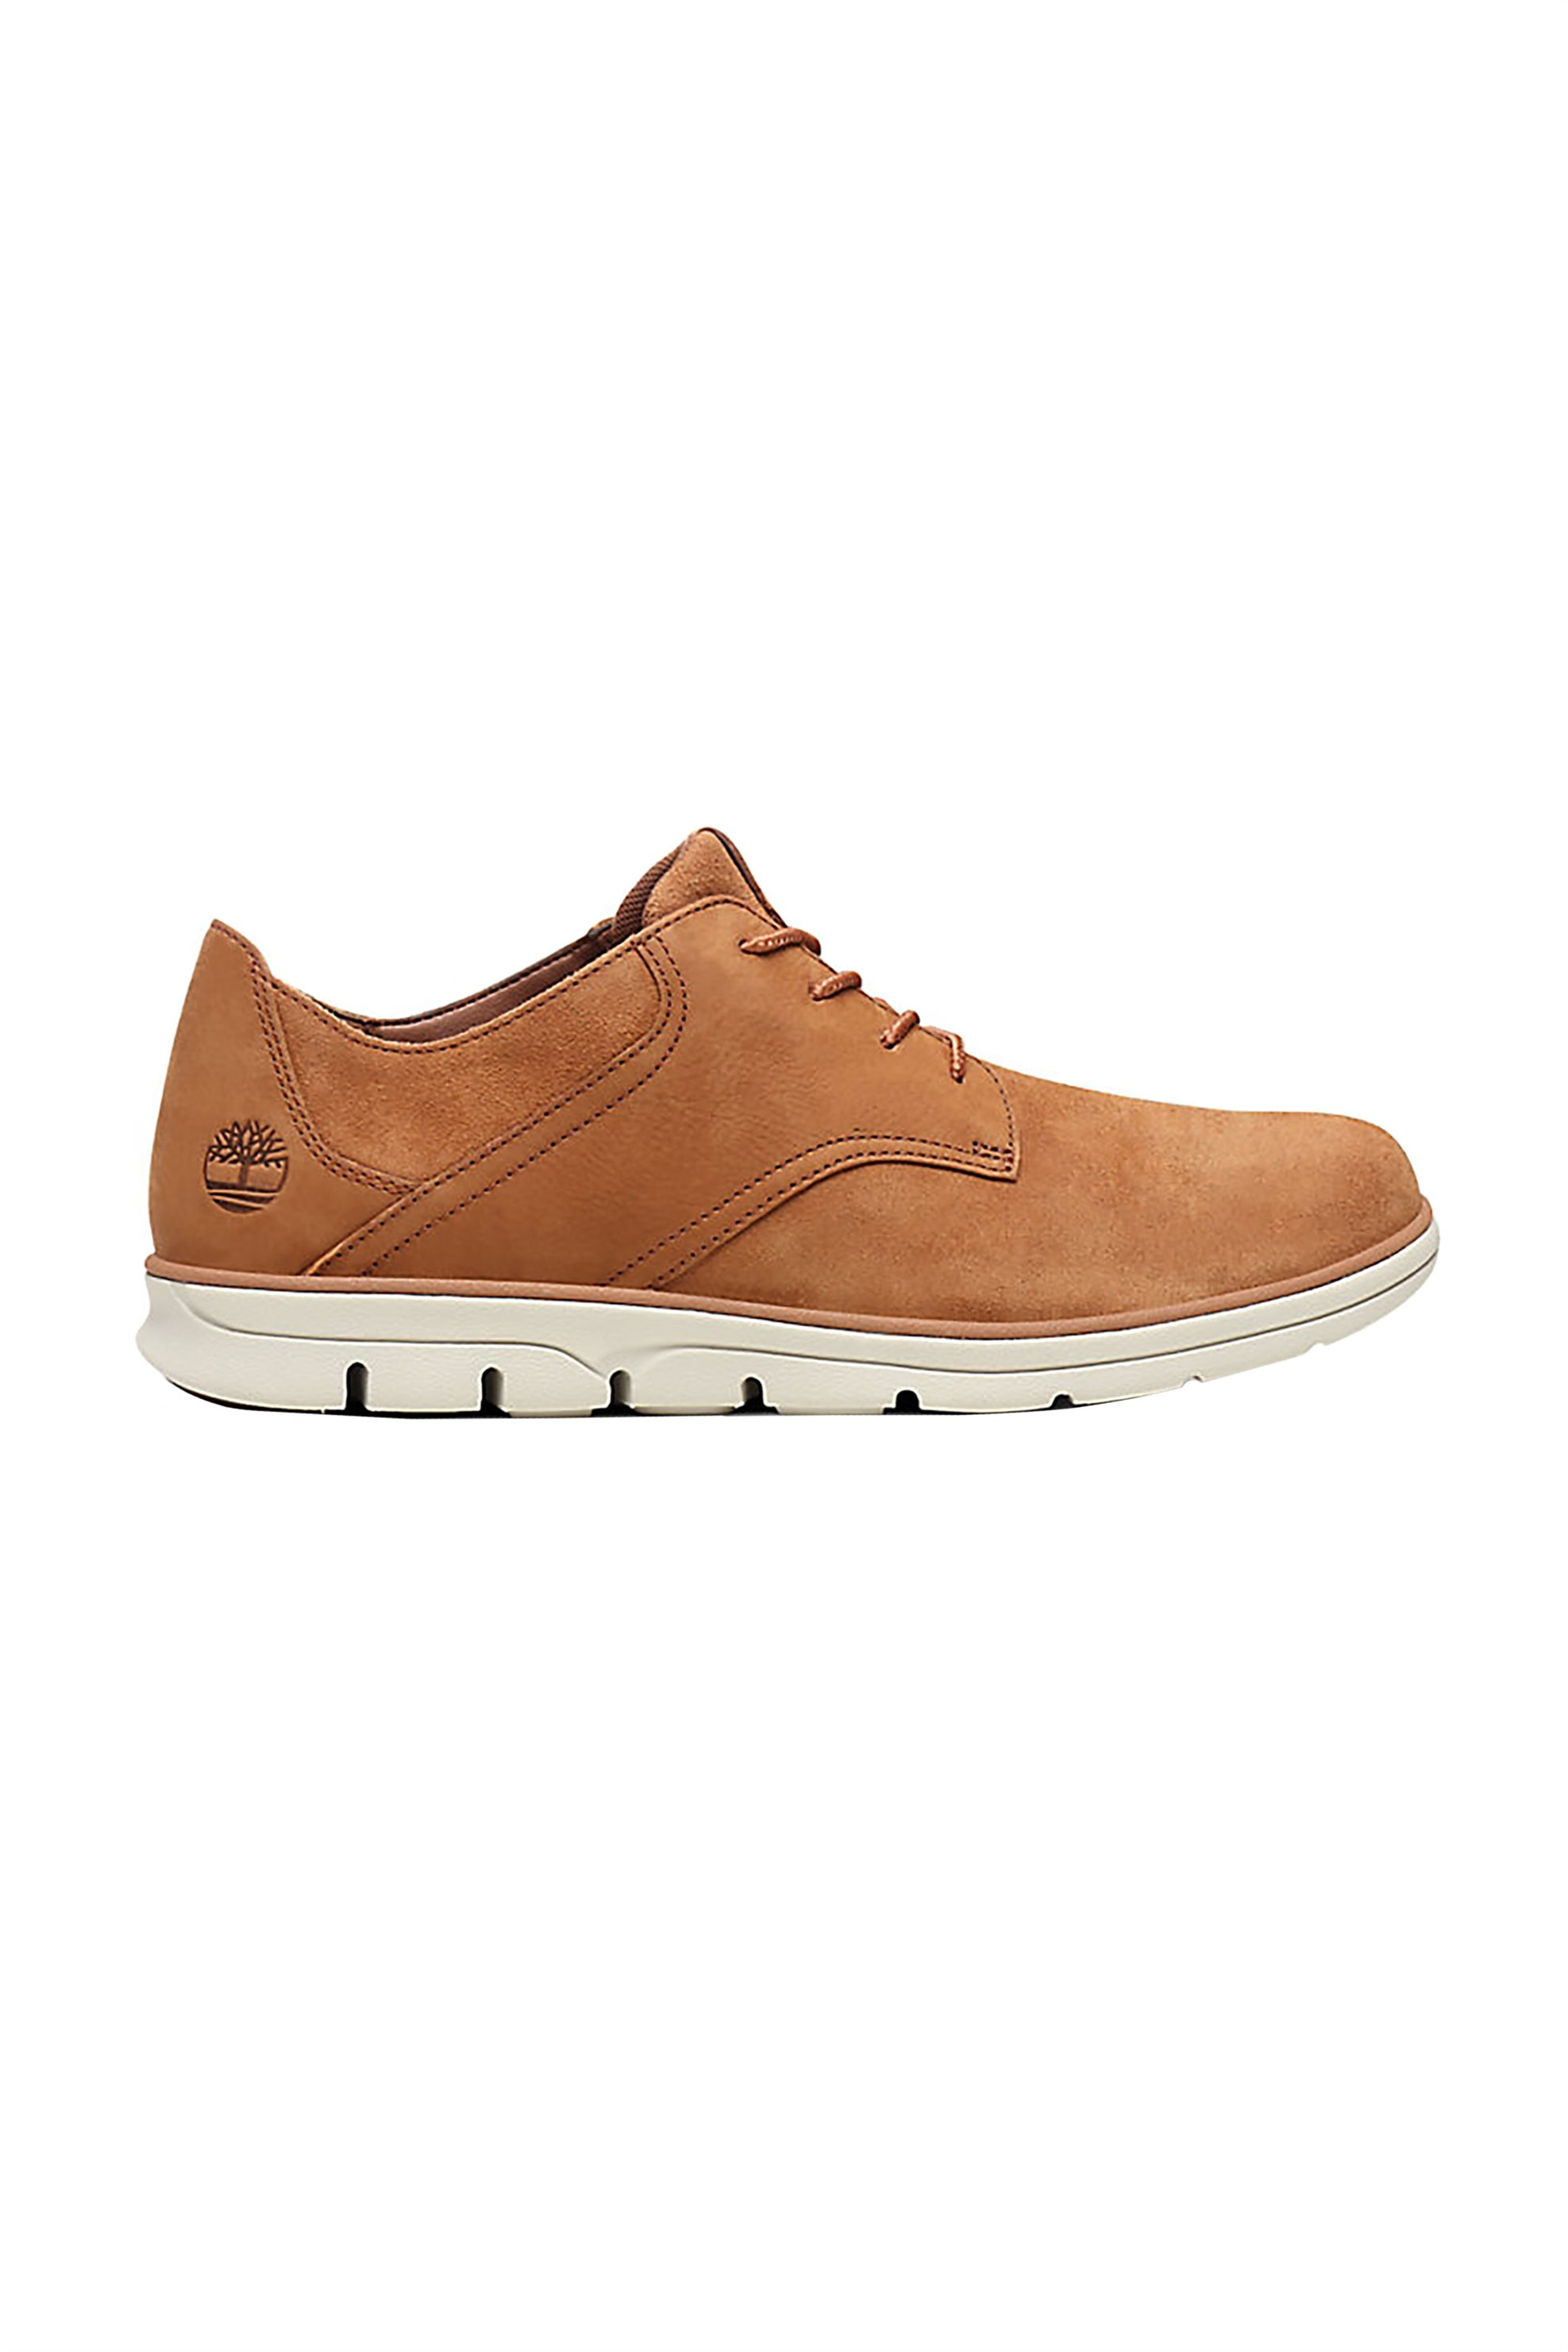 3bb08dc5430 Timberland ανδρικά παπούτσια Bradstreet Oxford - TB0A22QXK431 - Ταμπά - Roe  Shoes Collection